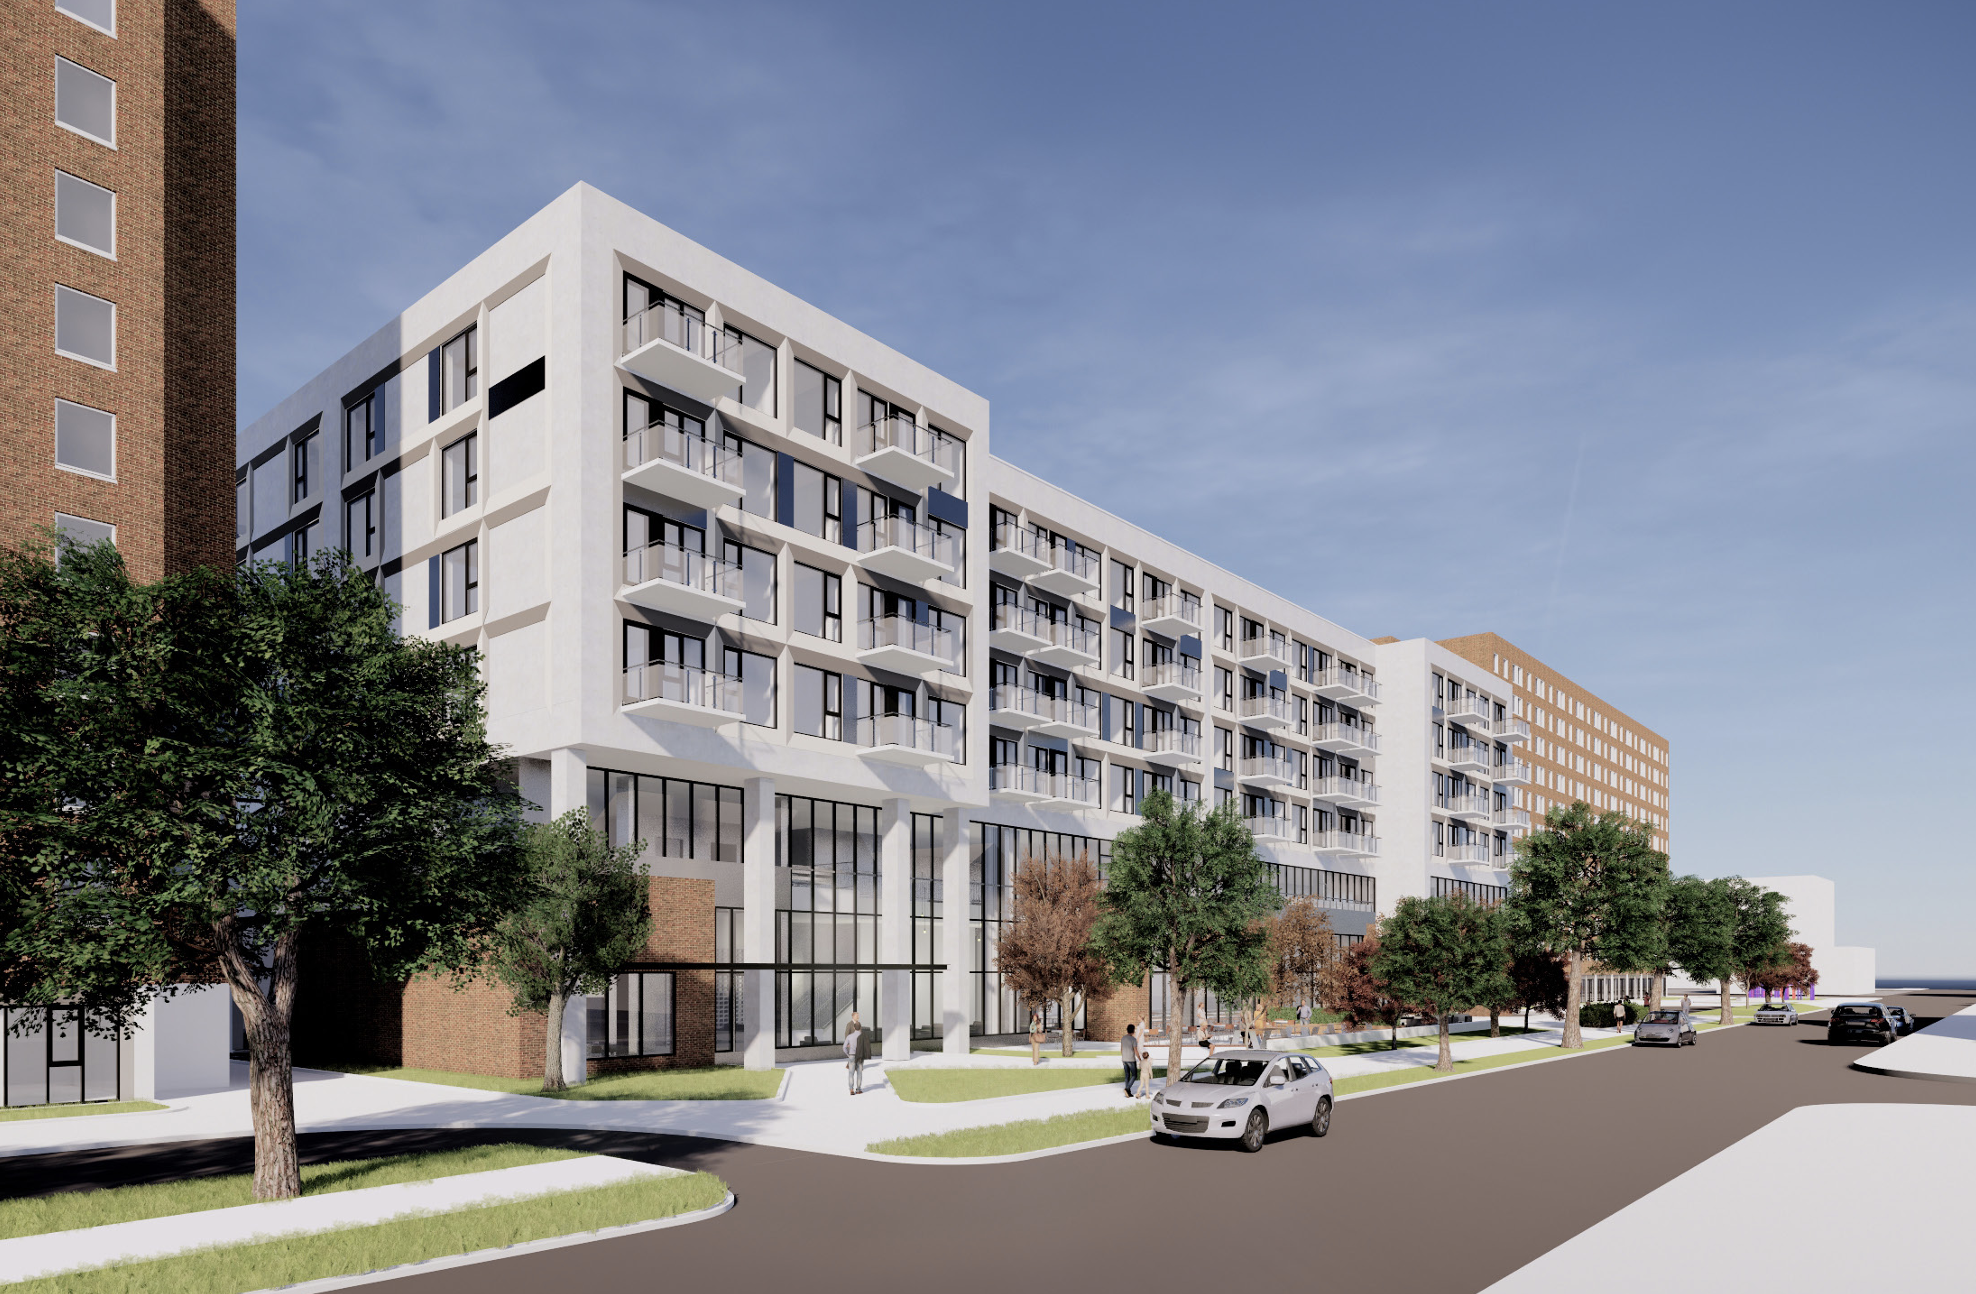 Lincoln Park senior housing complex tapped for mixed-income apartment expansion